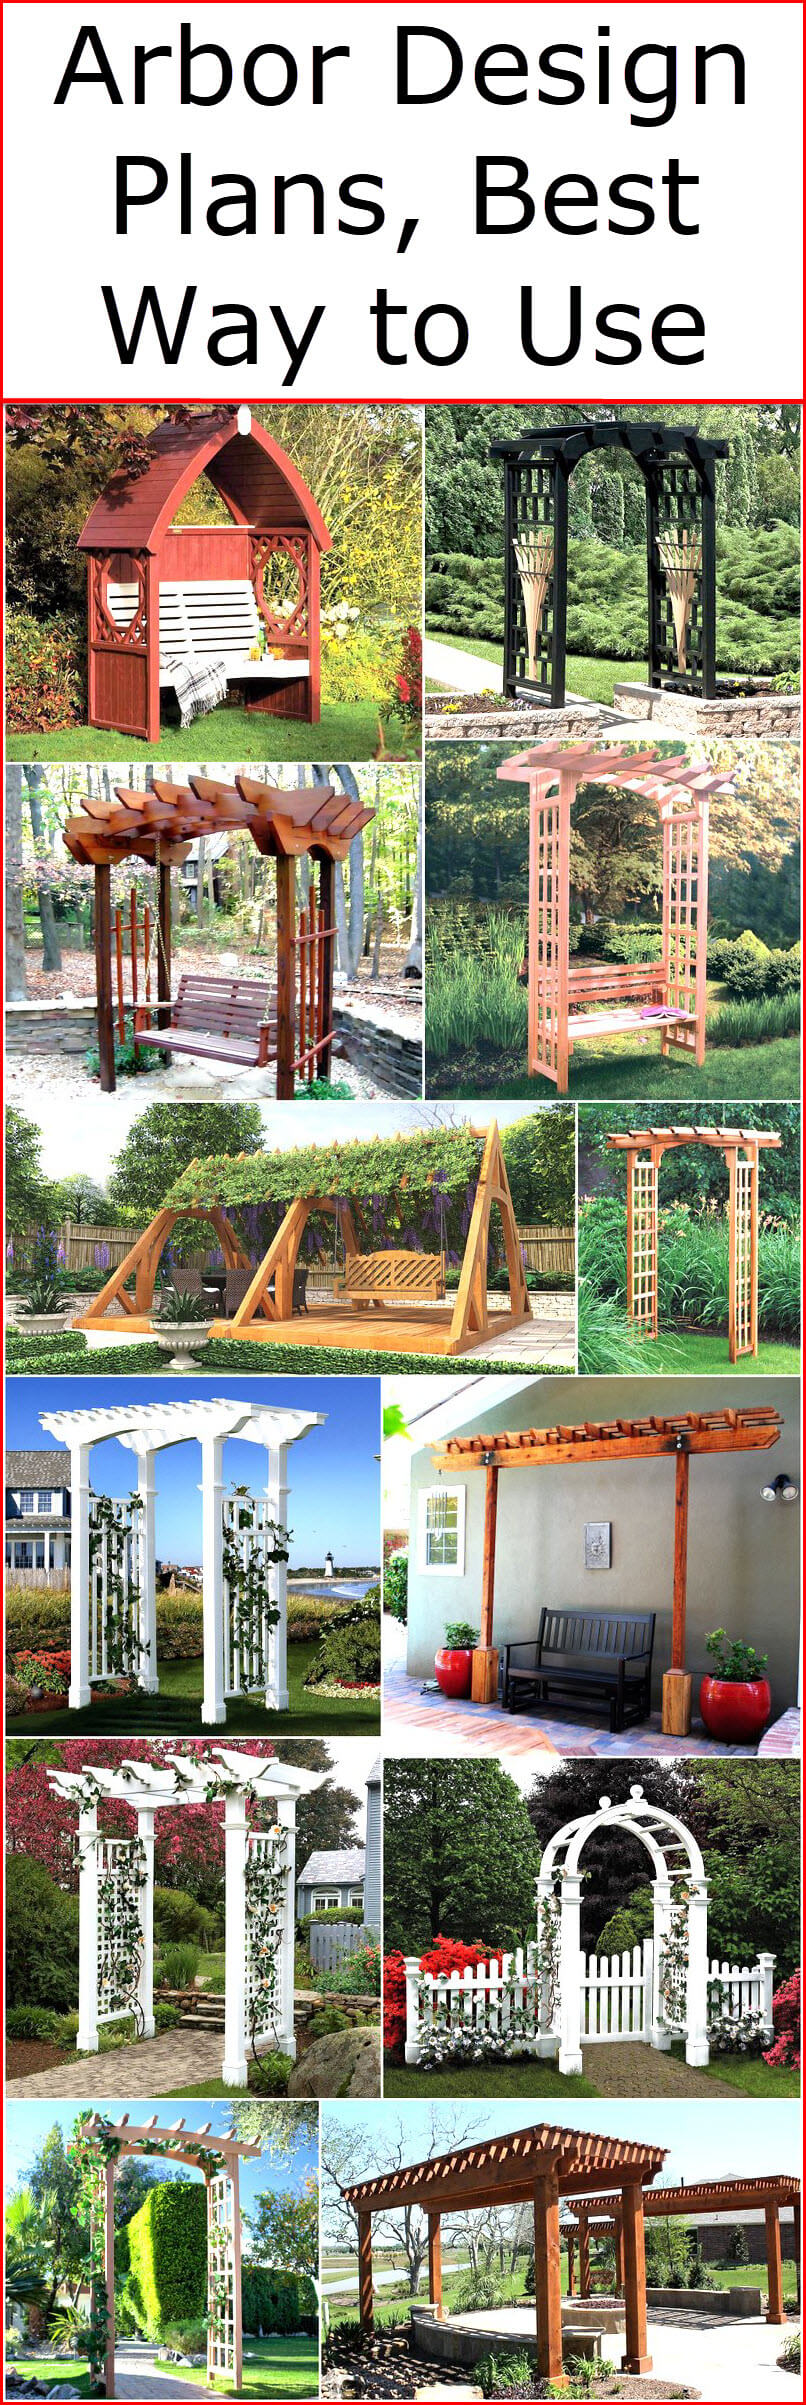 Arbor Design Plans Best Way to Use